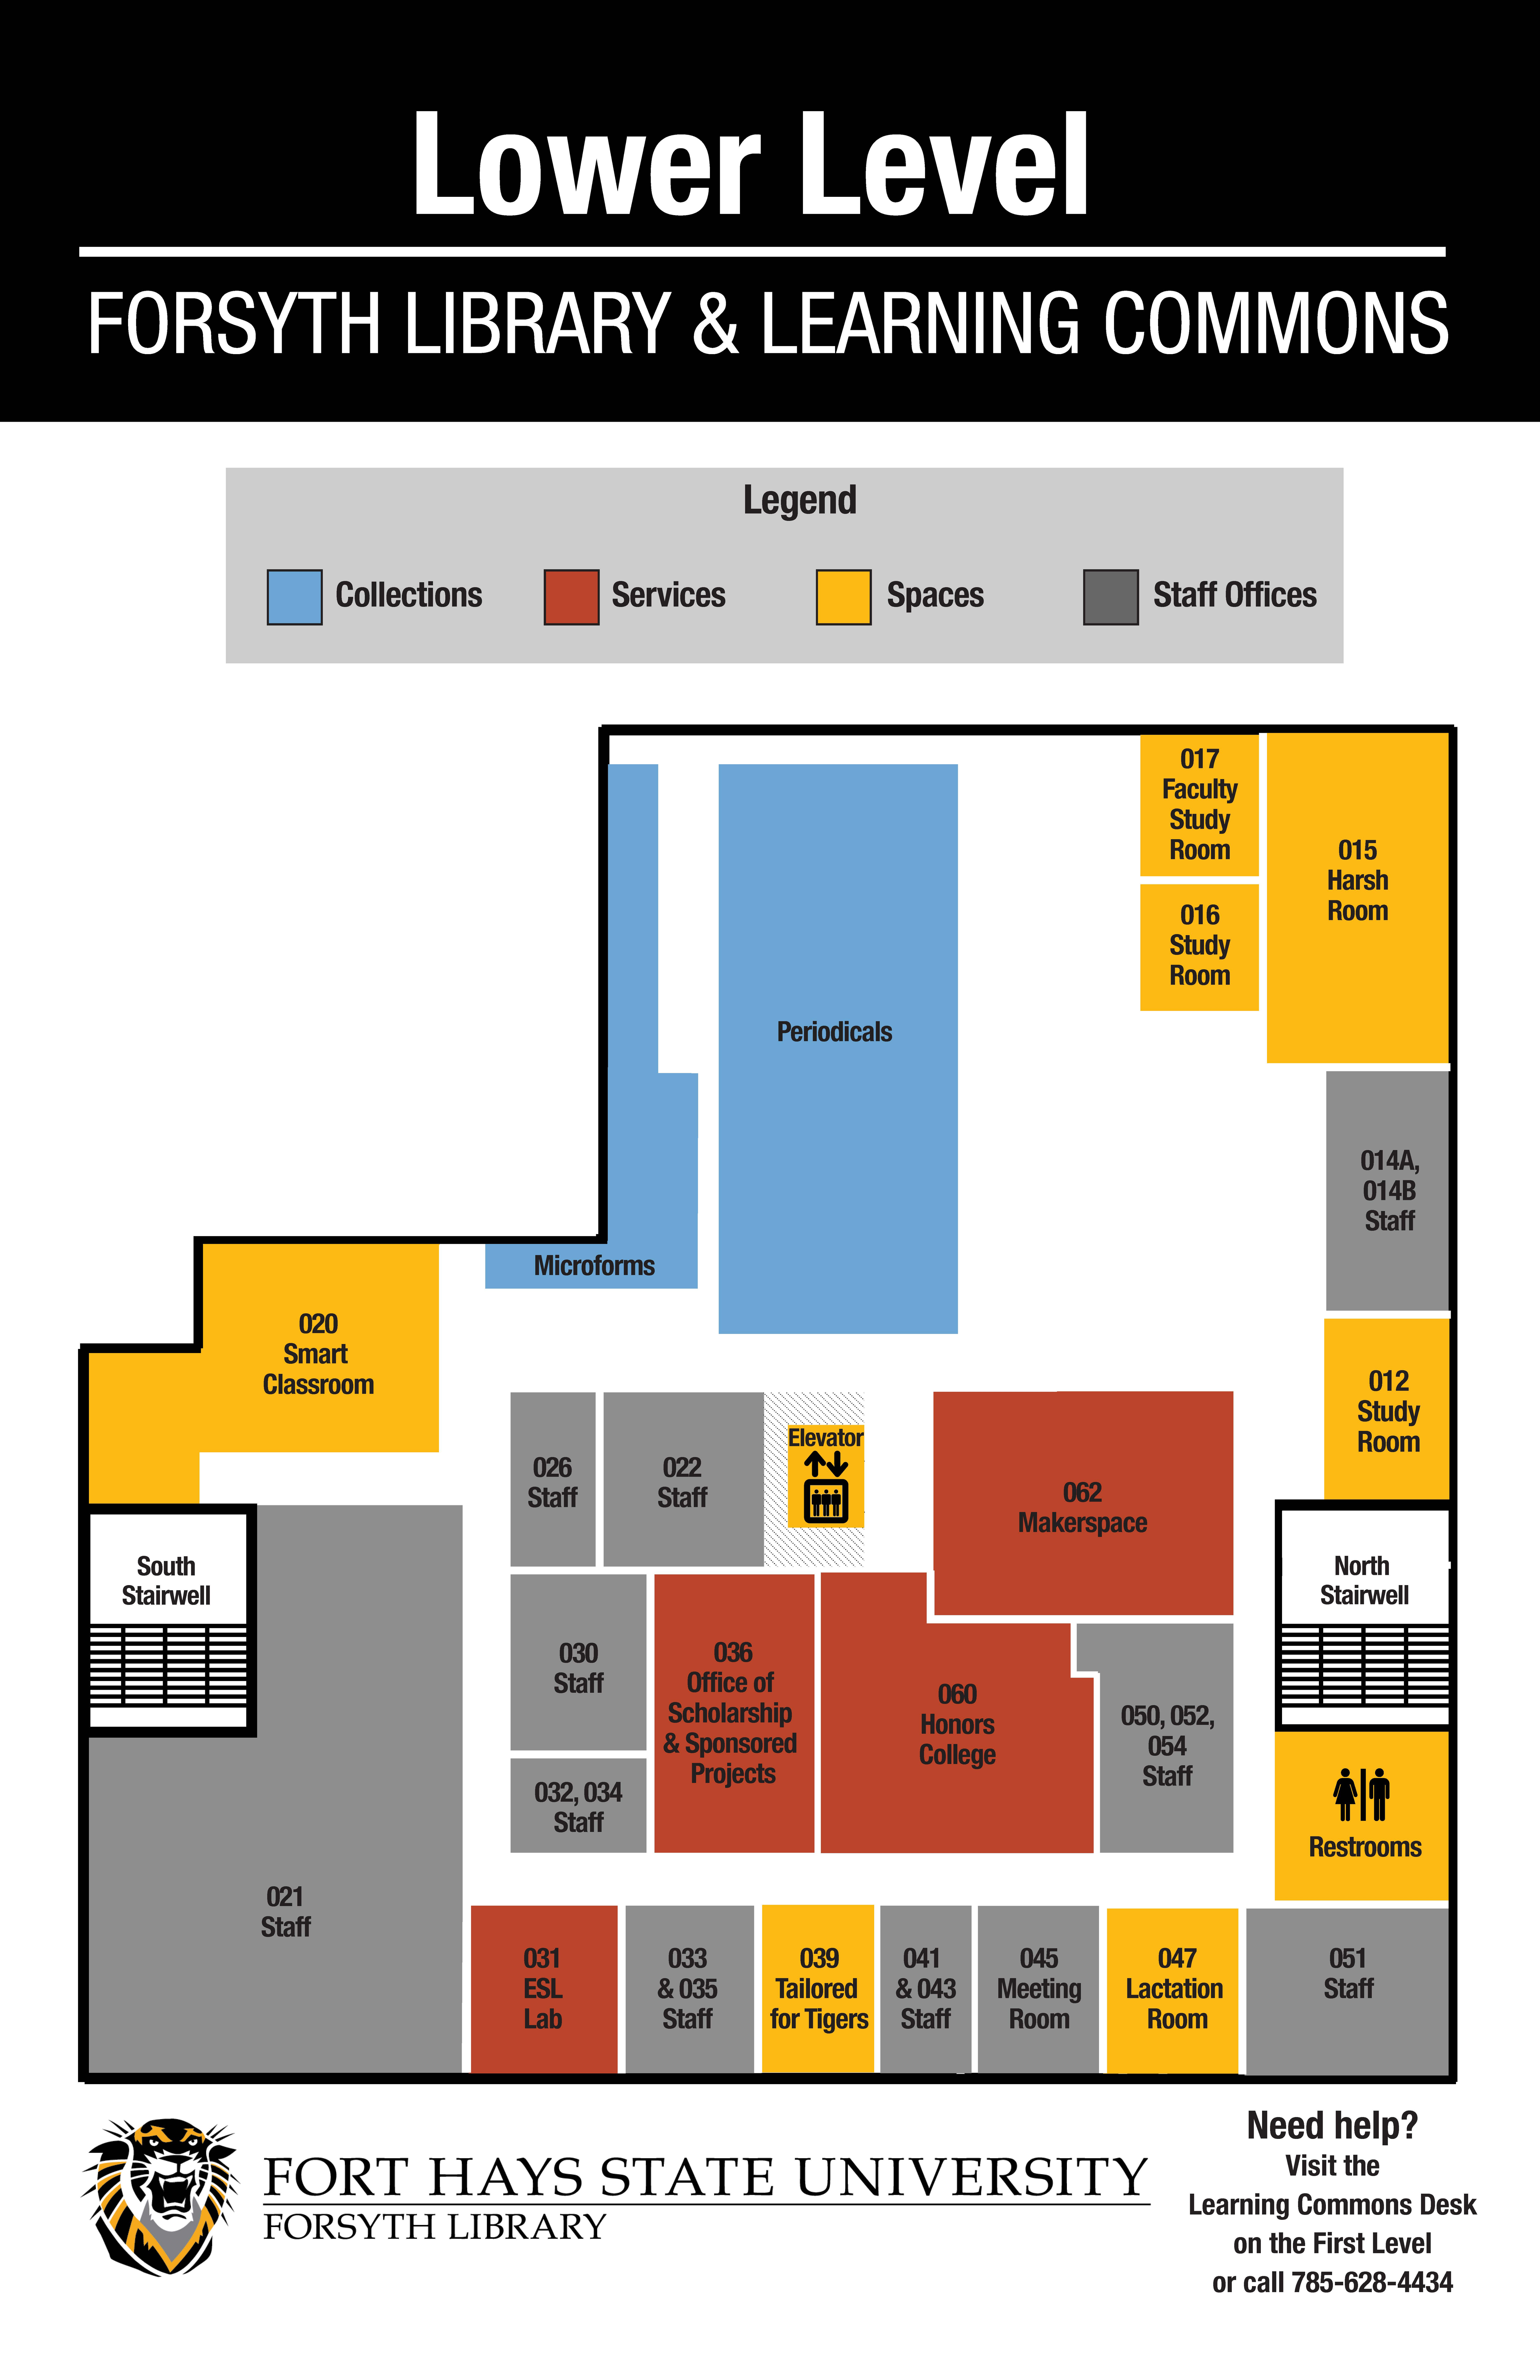 map of lower level of forsyth library